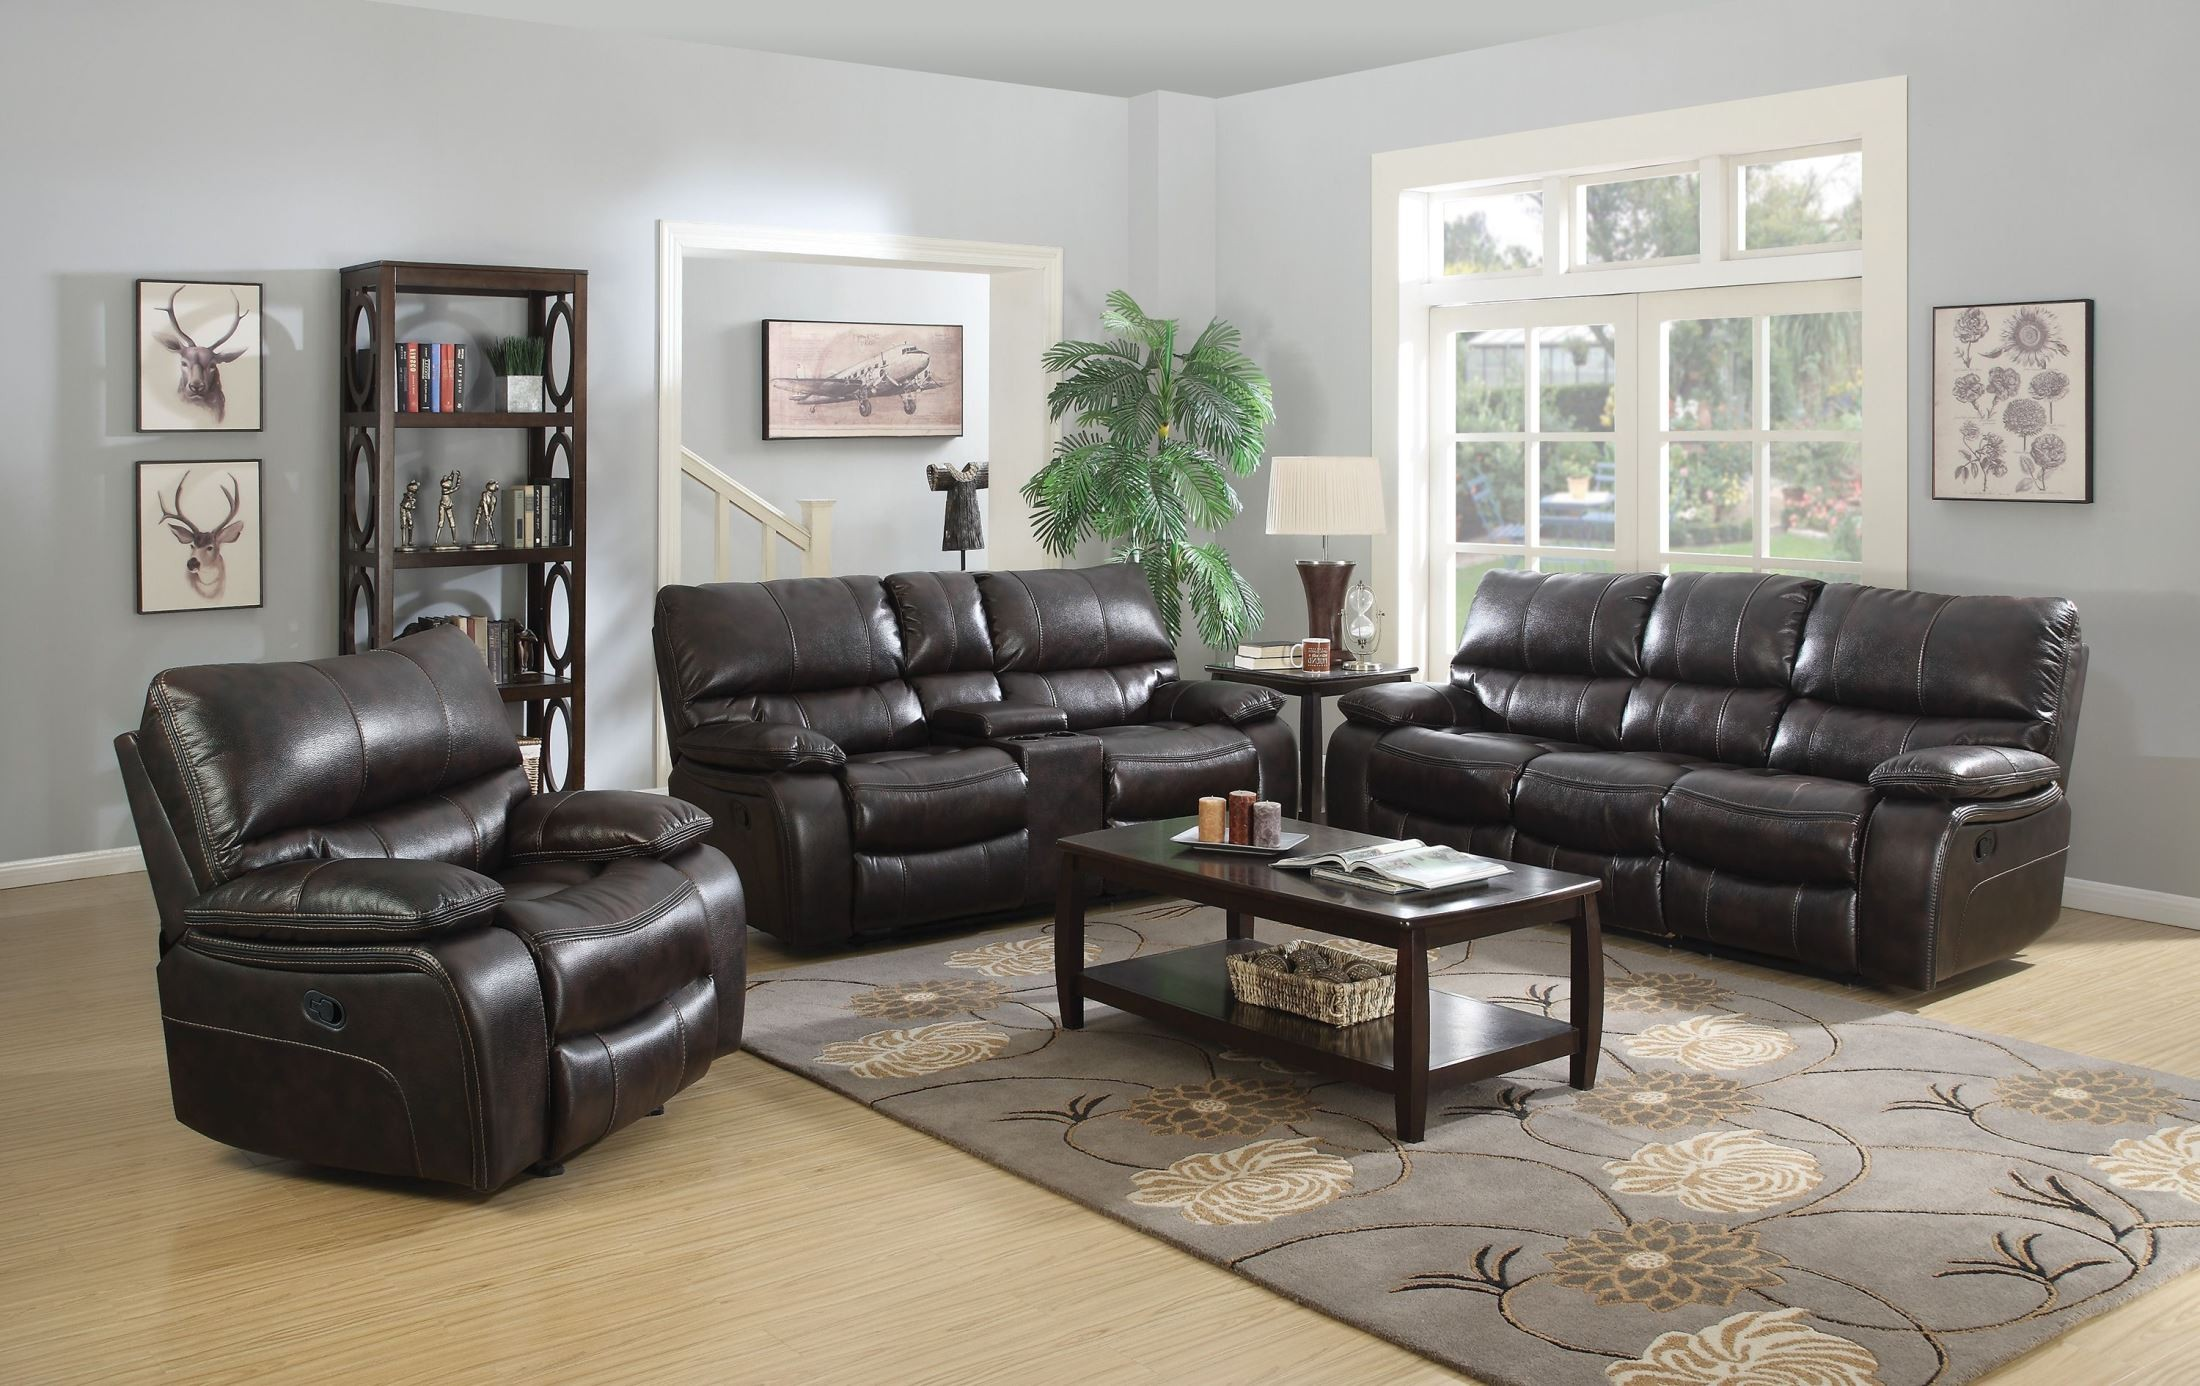 dark brown living room furniture willemse brown reclining living room set from coaster 19264